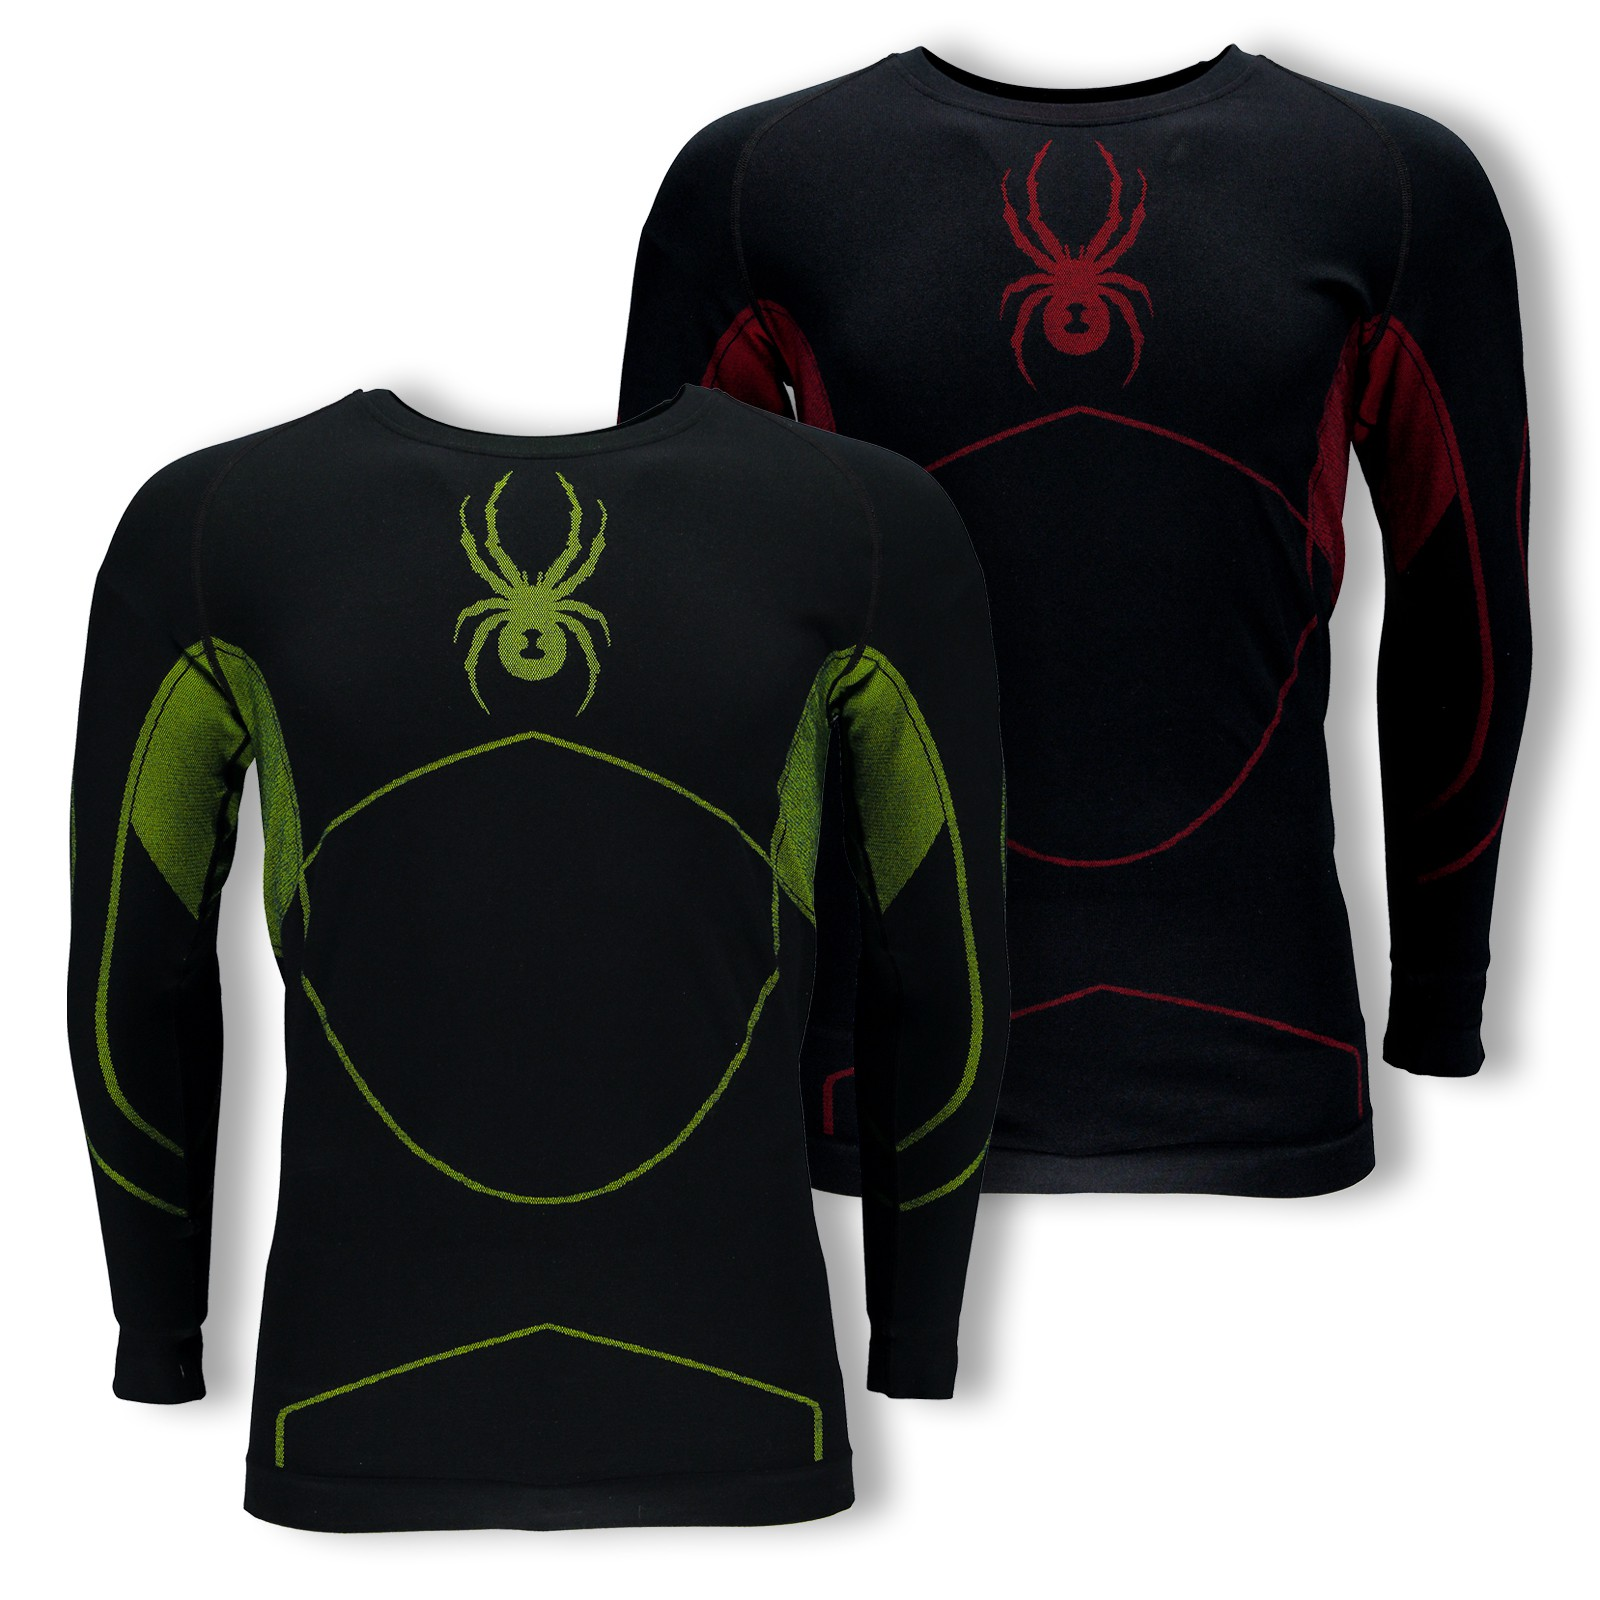 Spyder Herren Skiunterhemd Funktionsshirt langarm Structure (Boxed) 626702 in black/red vergrößern